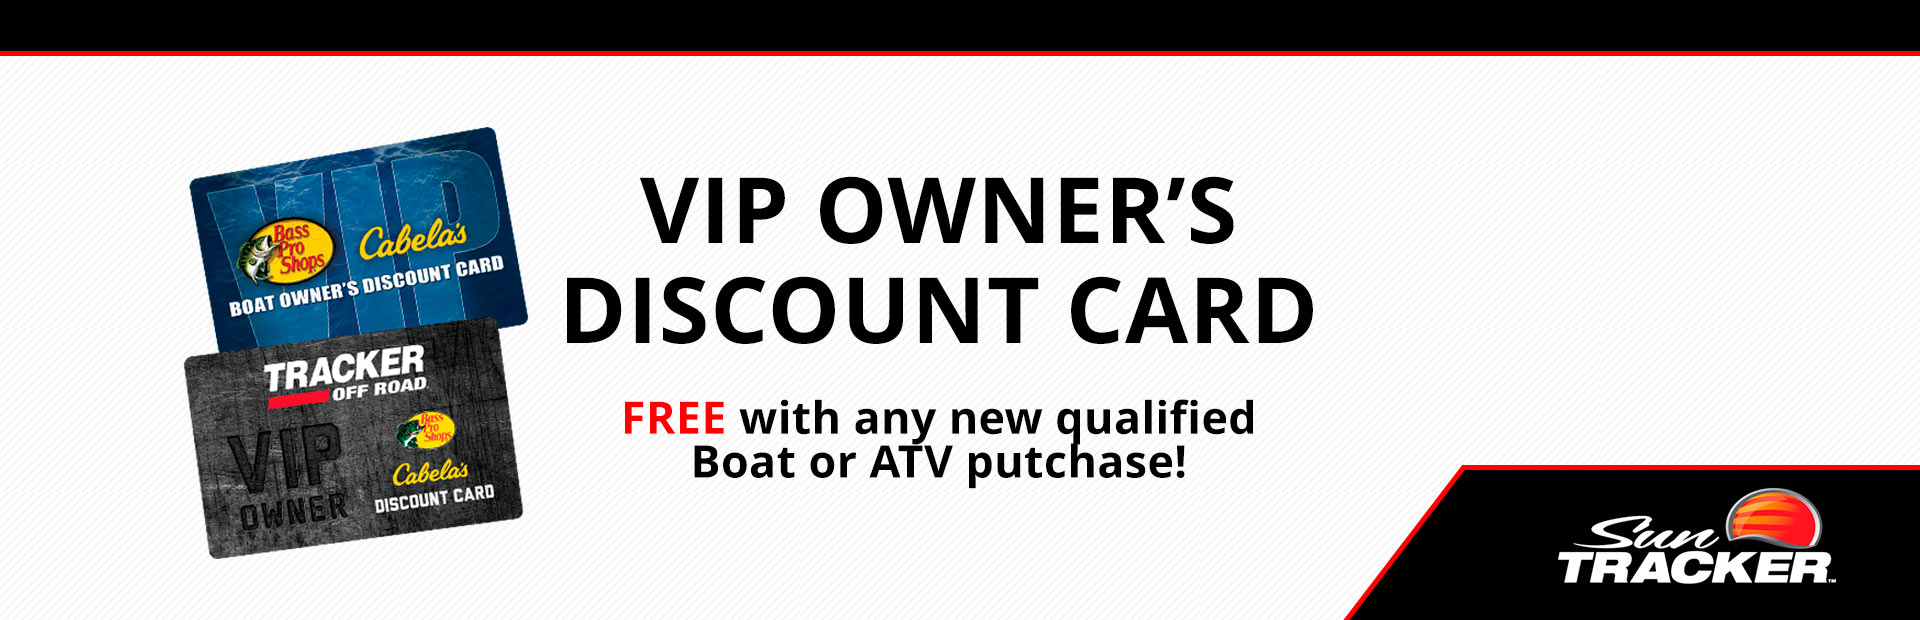 Sun Tracker: Free Owner's Discount Card w/ Boat Purchase